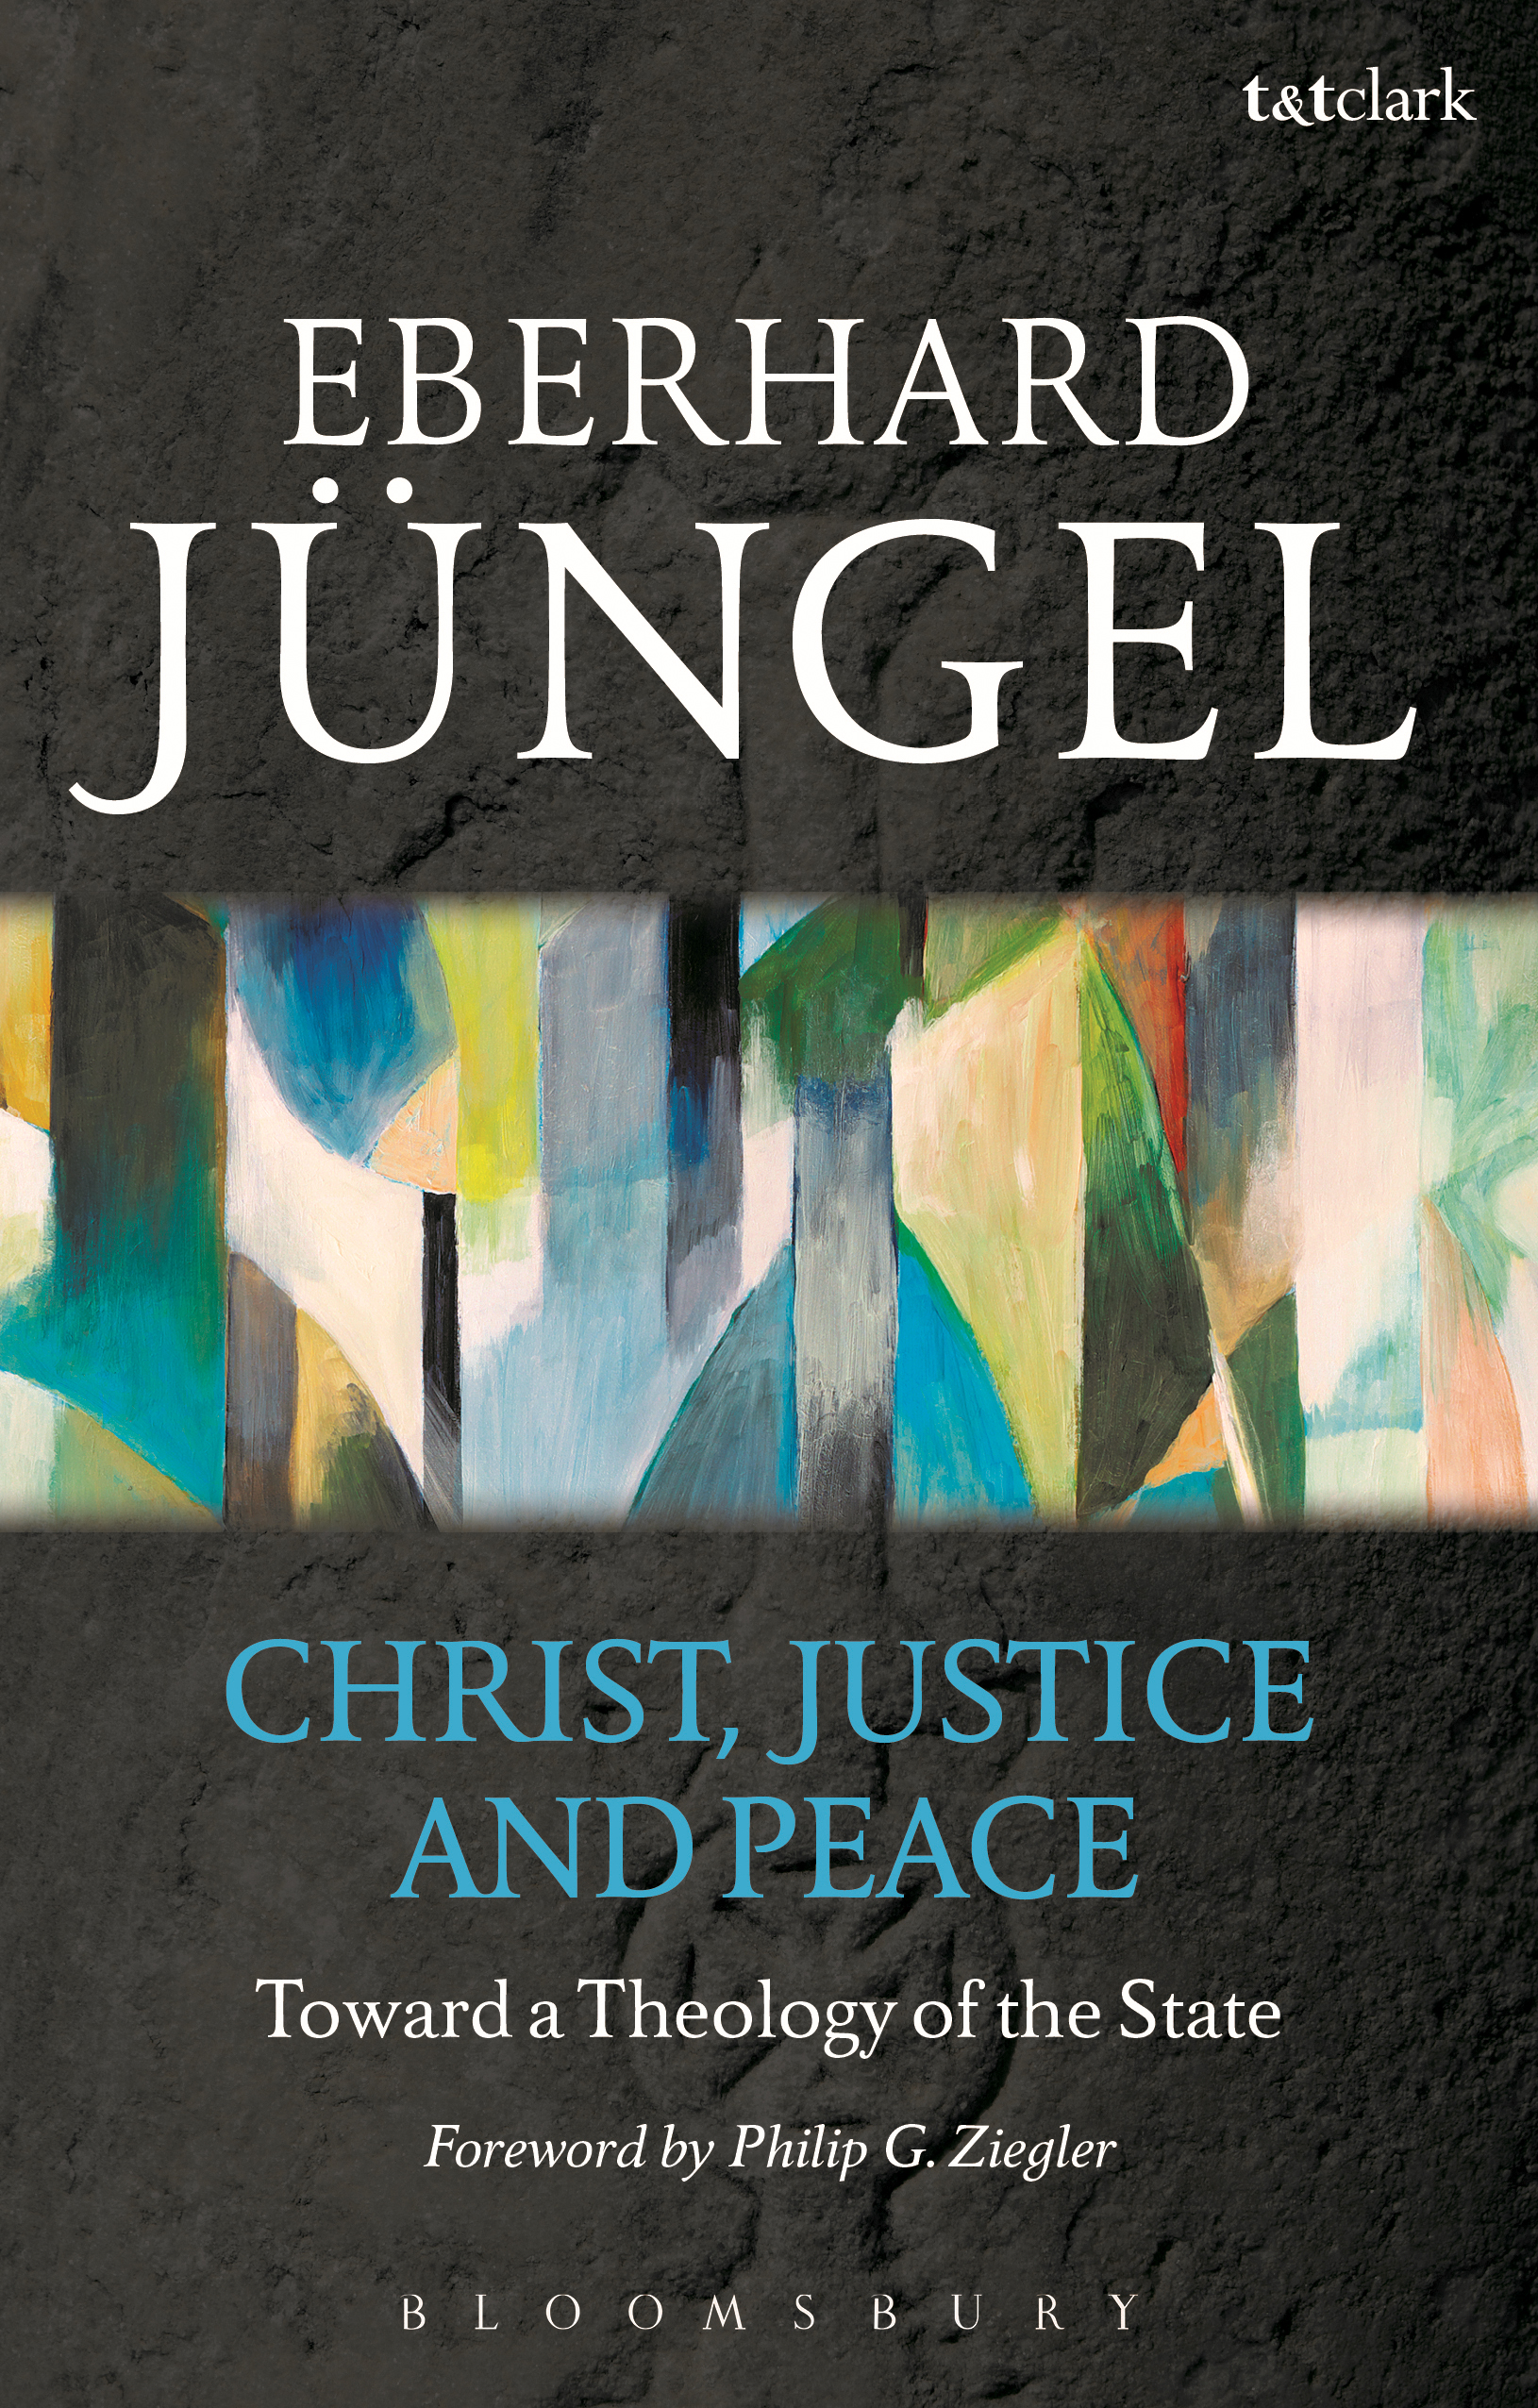 Christ, Justice and Peace